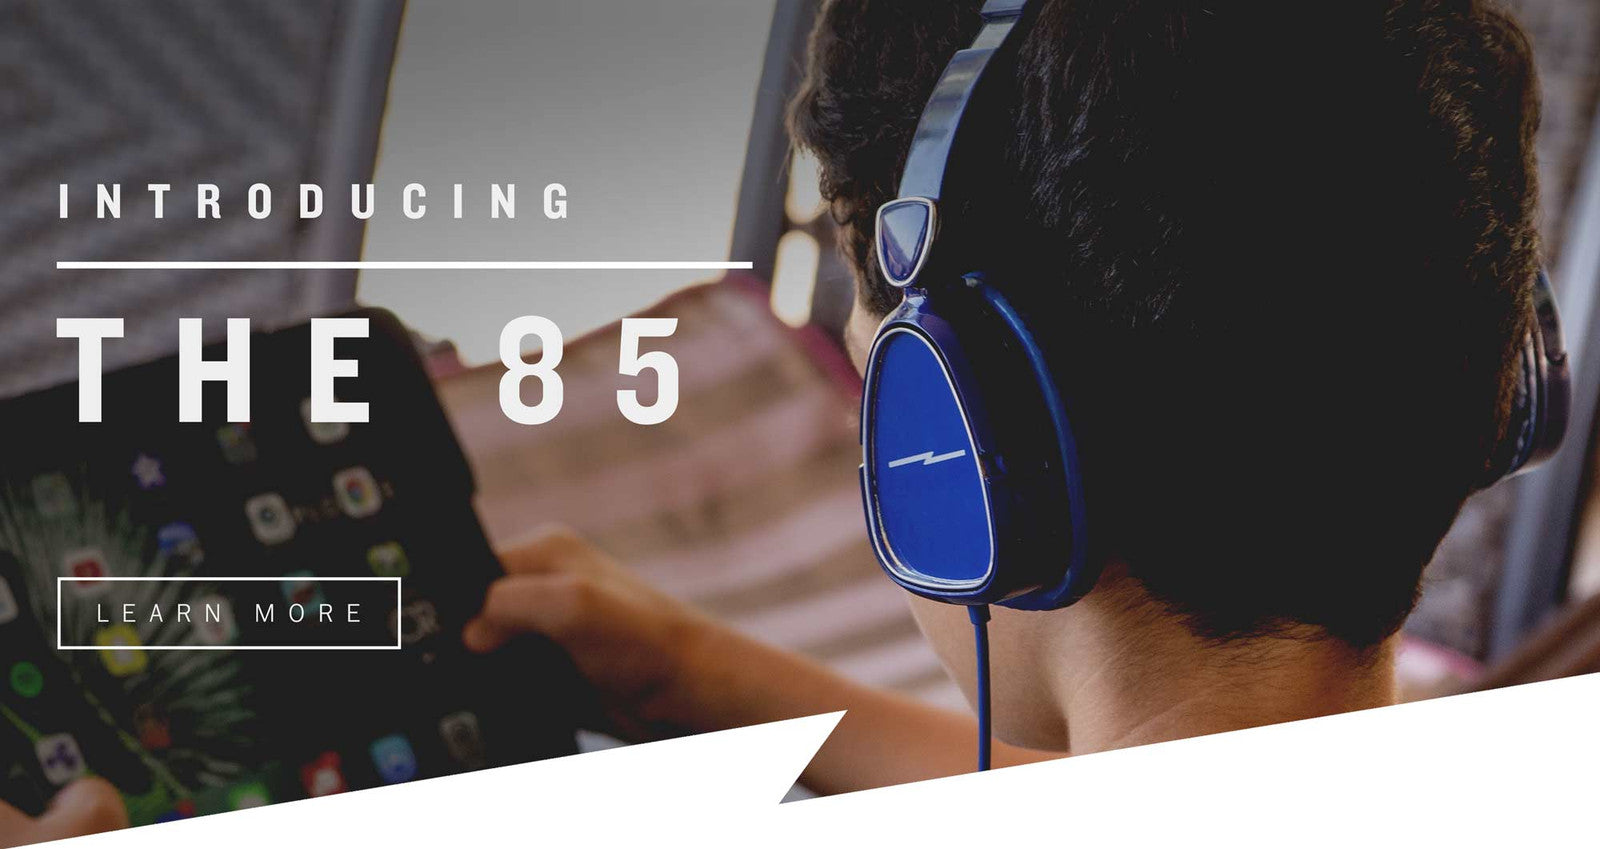 LSTN Wood Headphones, Earbuds & Speakers Gifts that Give Back